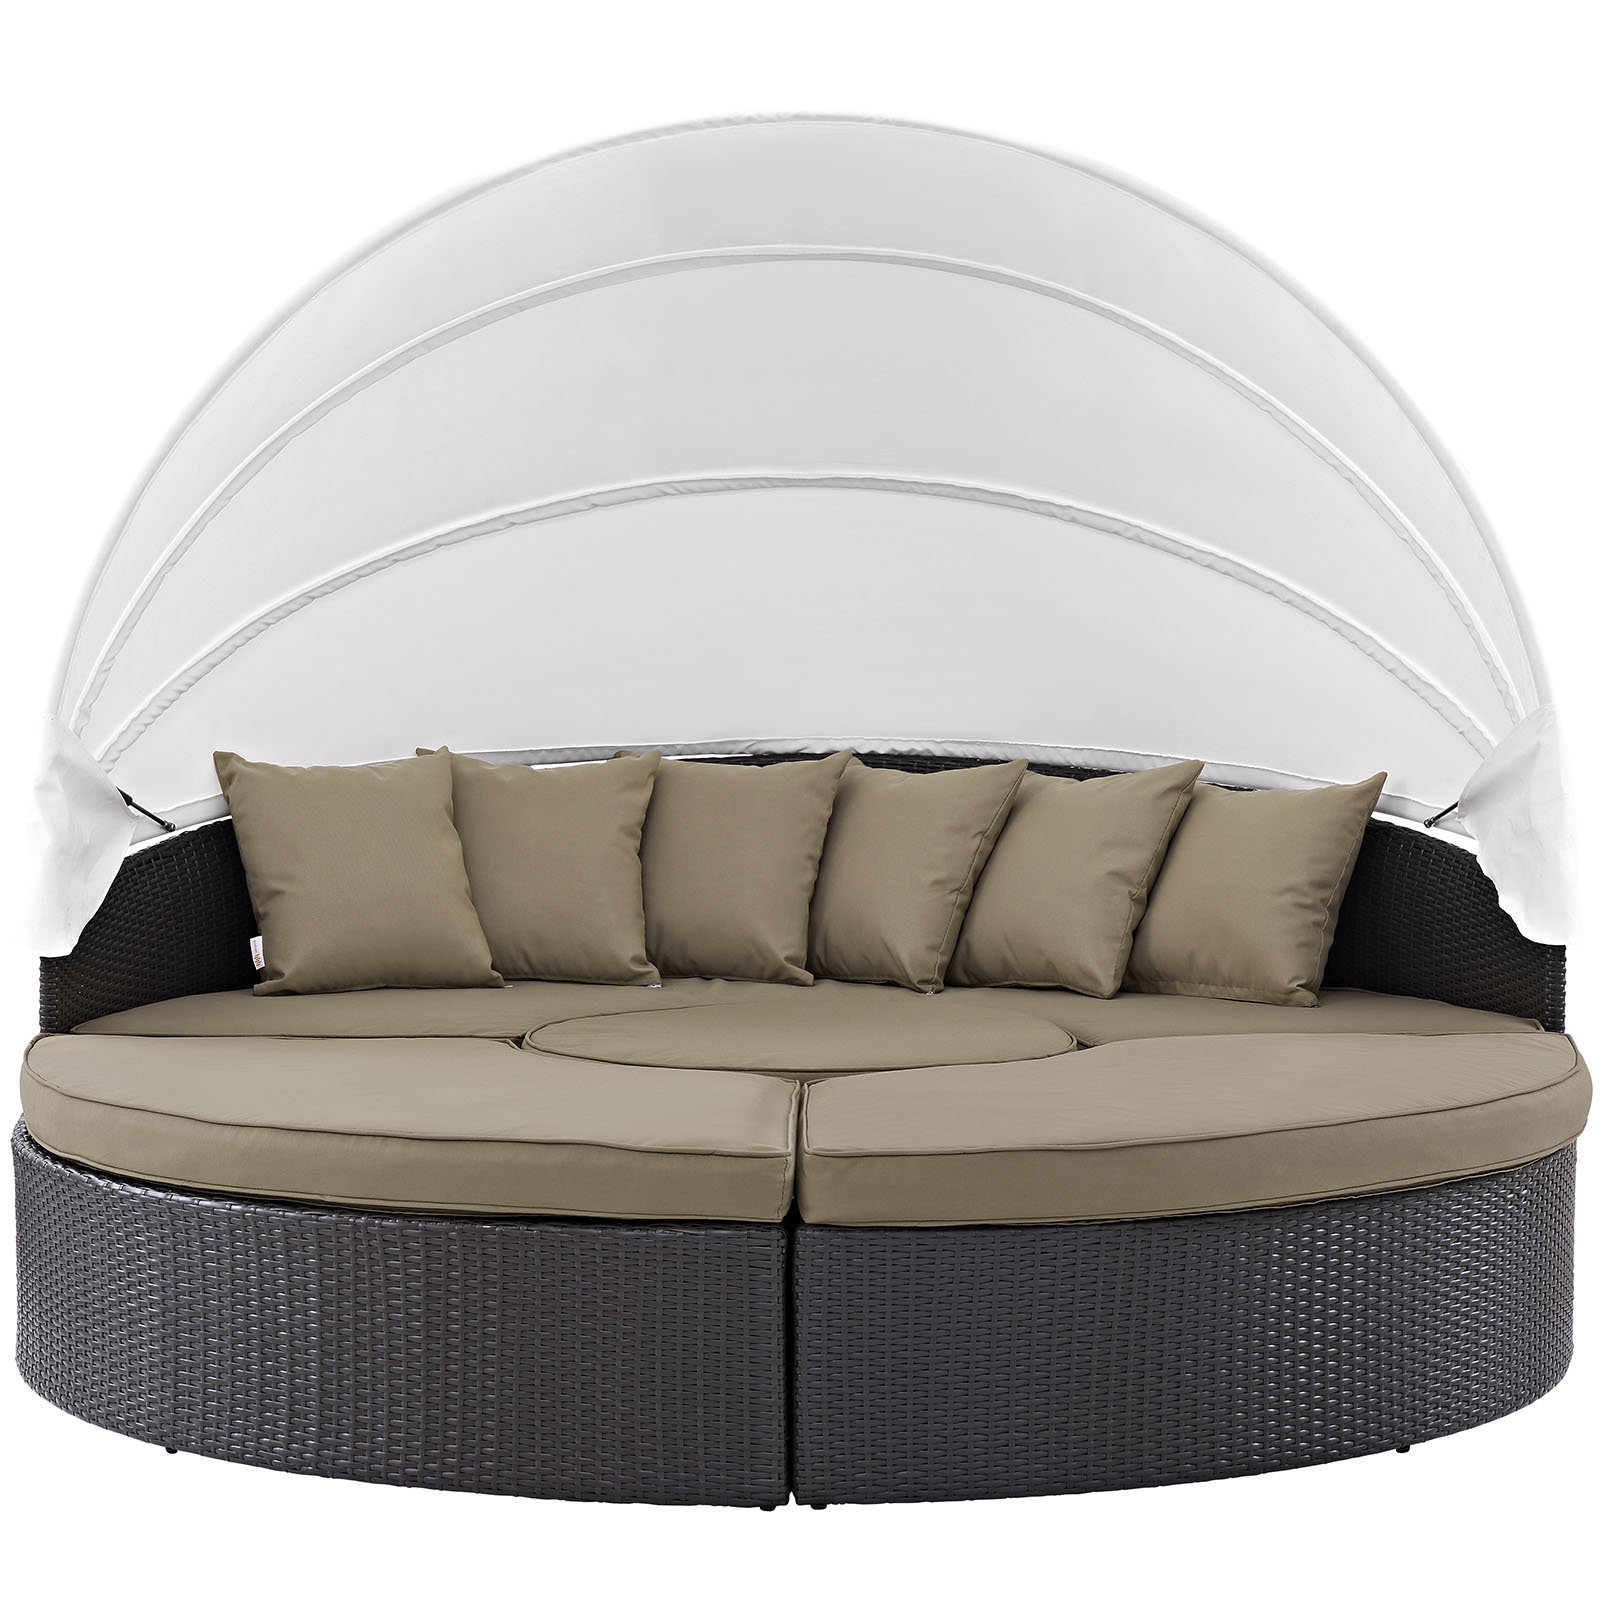 Brentwood Patio Daybed With Cushions With Popular Leiston Round Patio Daybeds With Cushions (View 5 of 20)